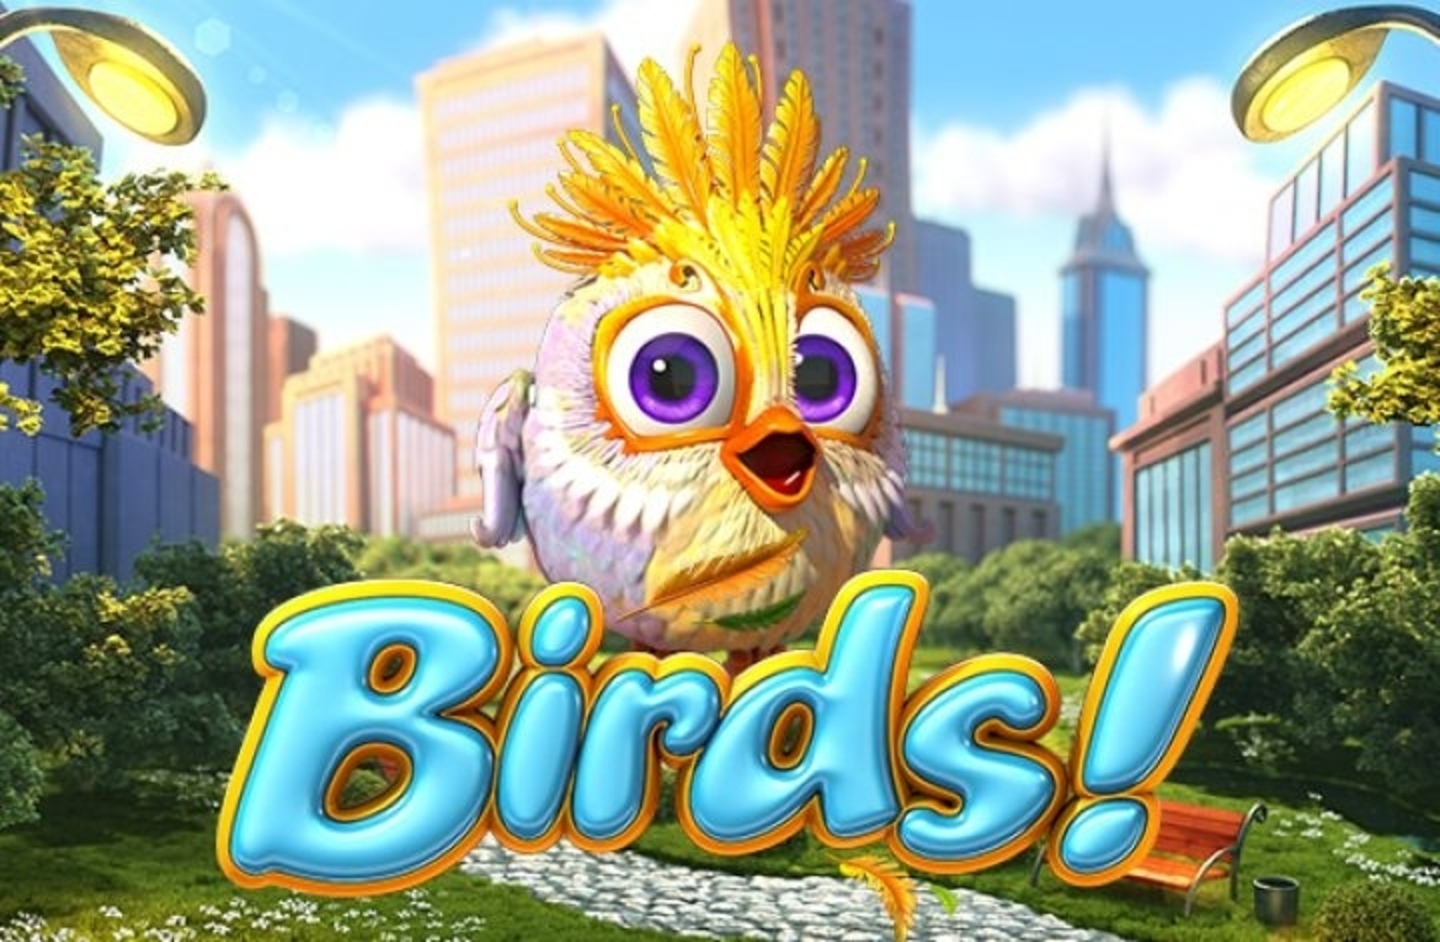 The Birds! Online Slot Demo Game by Betsoft